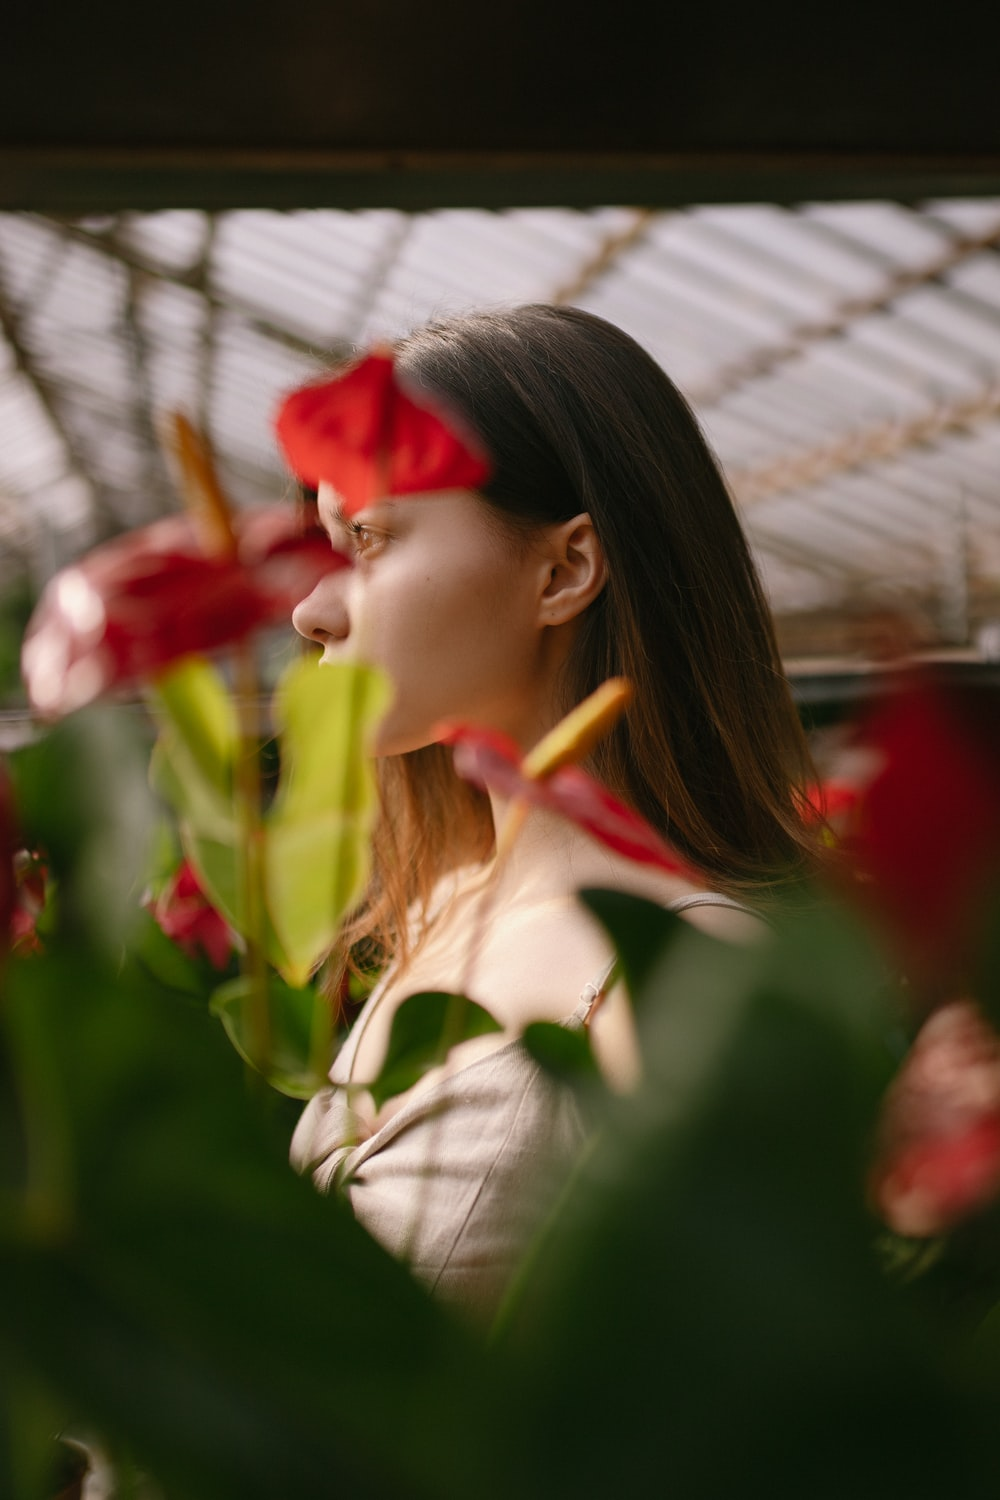 woman in white dress shirt holding red flower during daytime